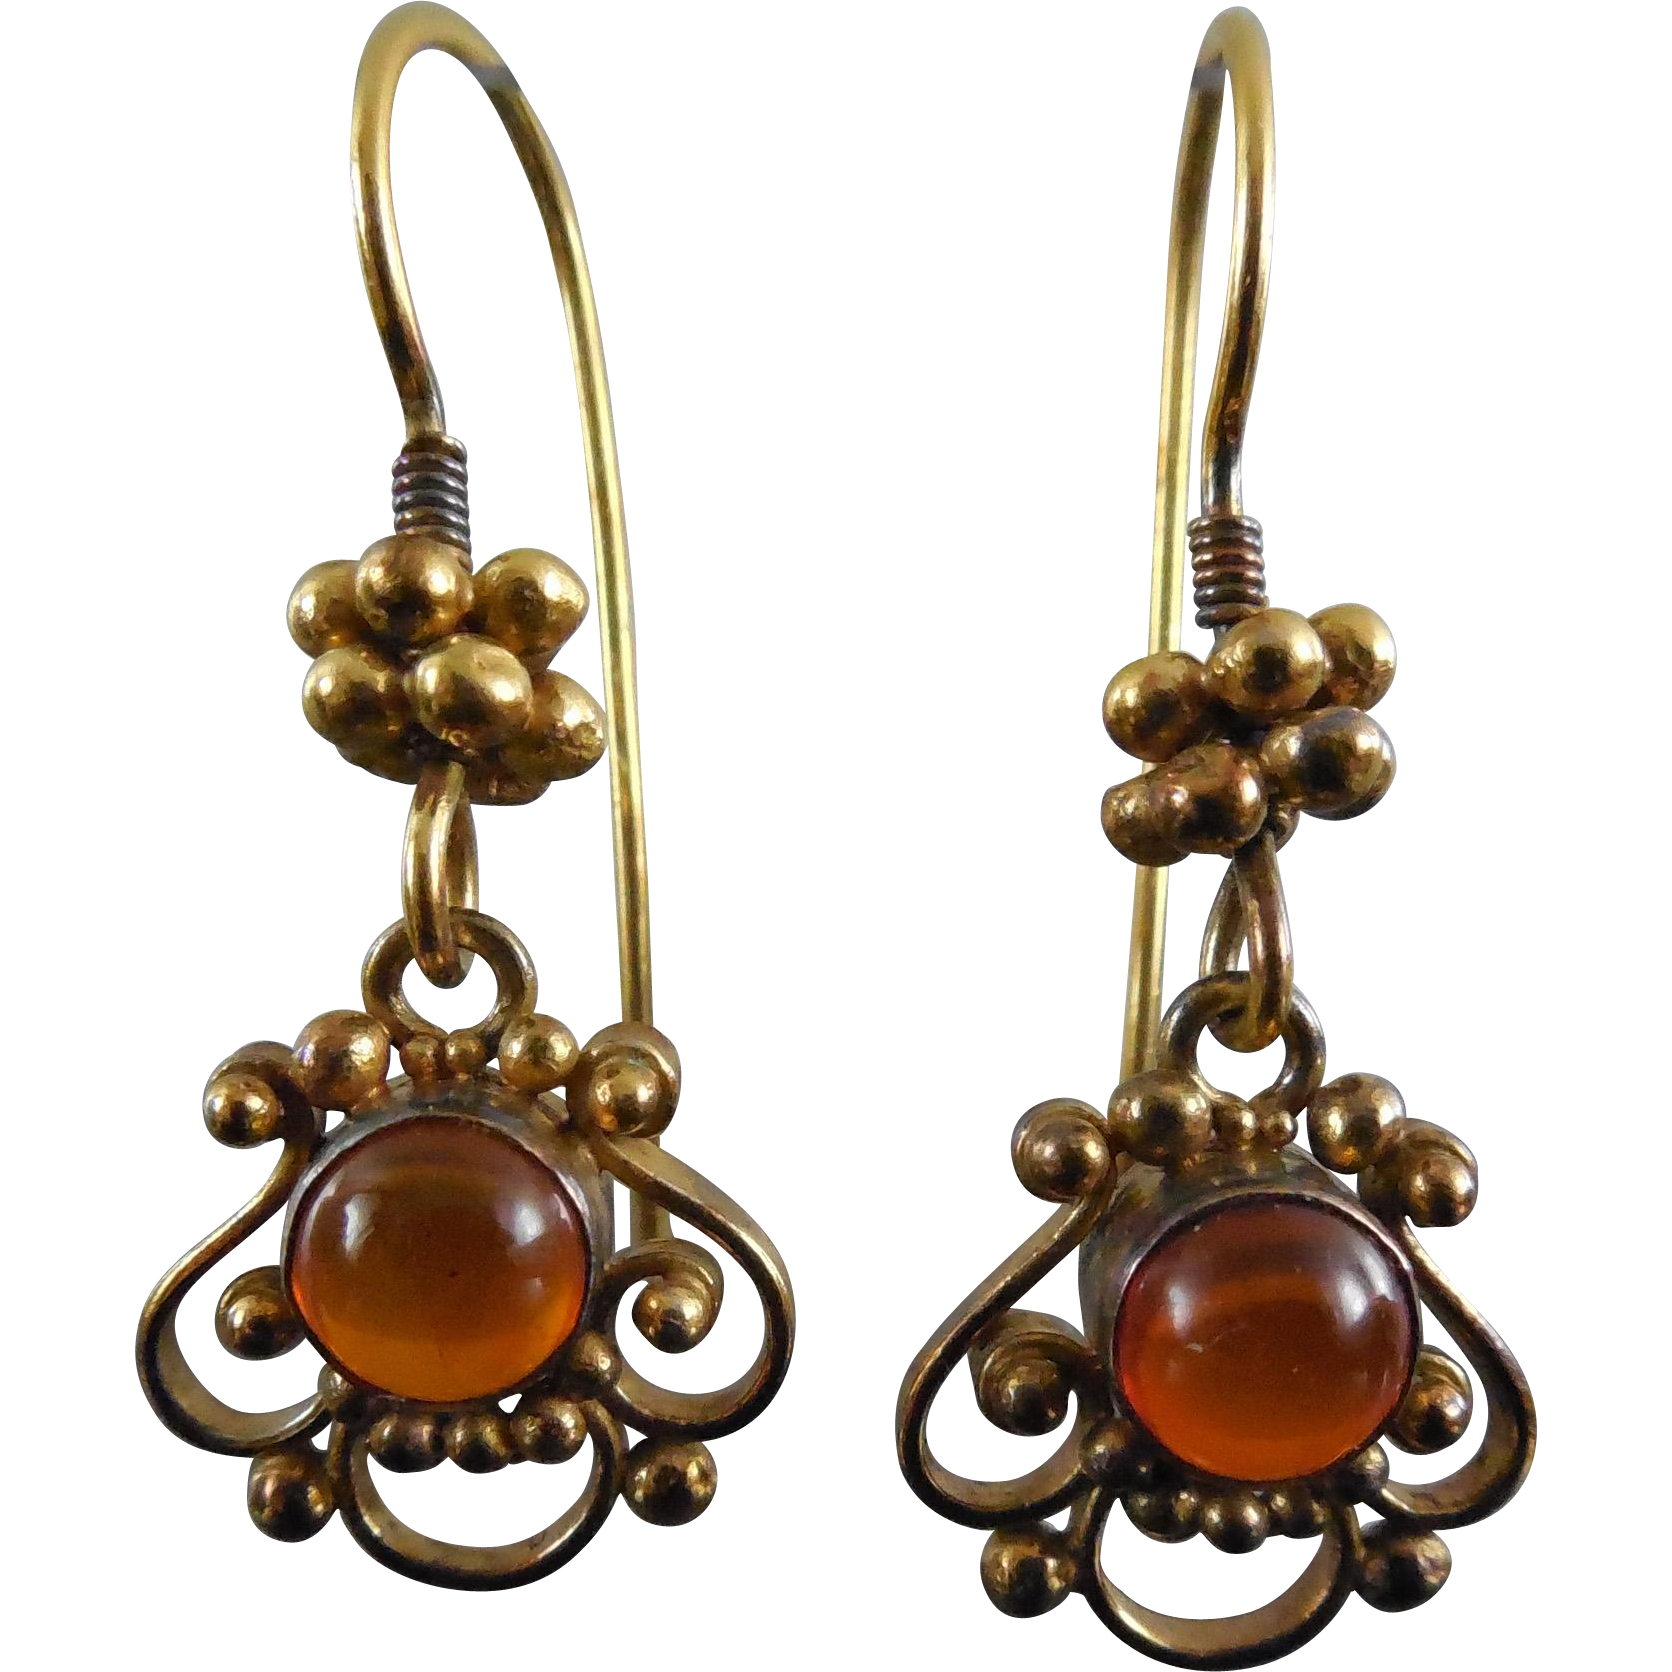 10K Gold & Amber Victorian Earrings - Elaborate Design on Fish Hook Wires